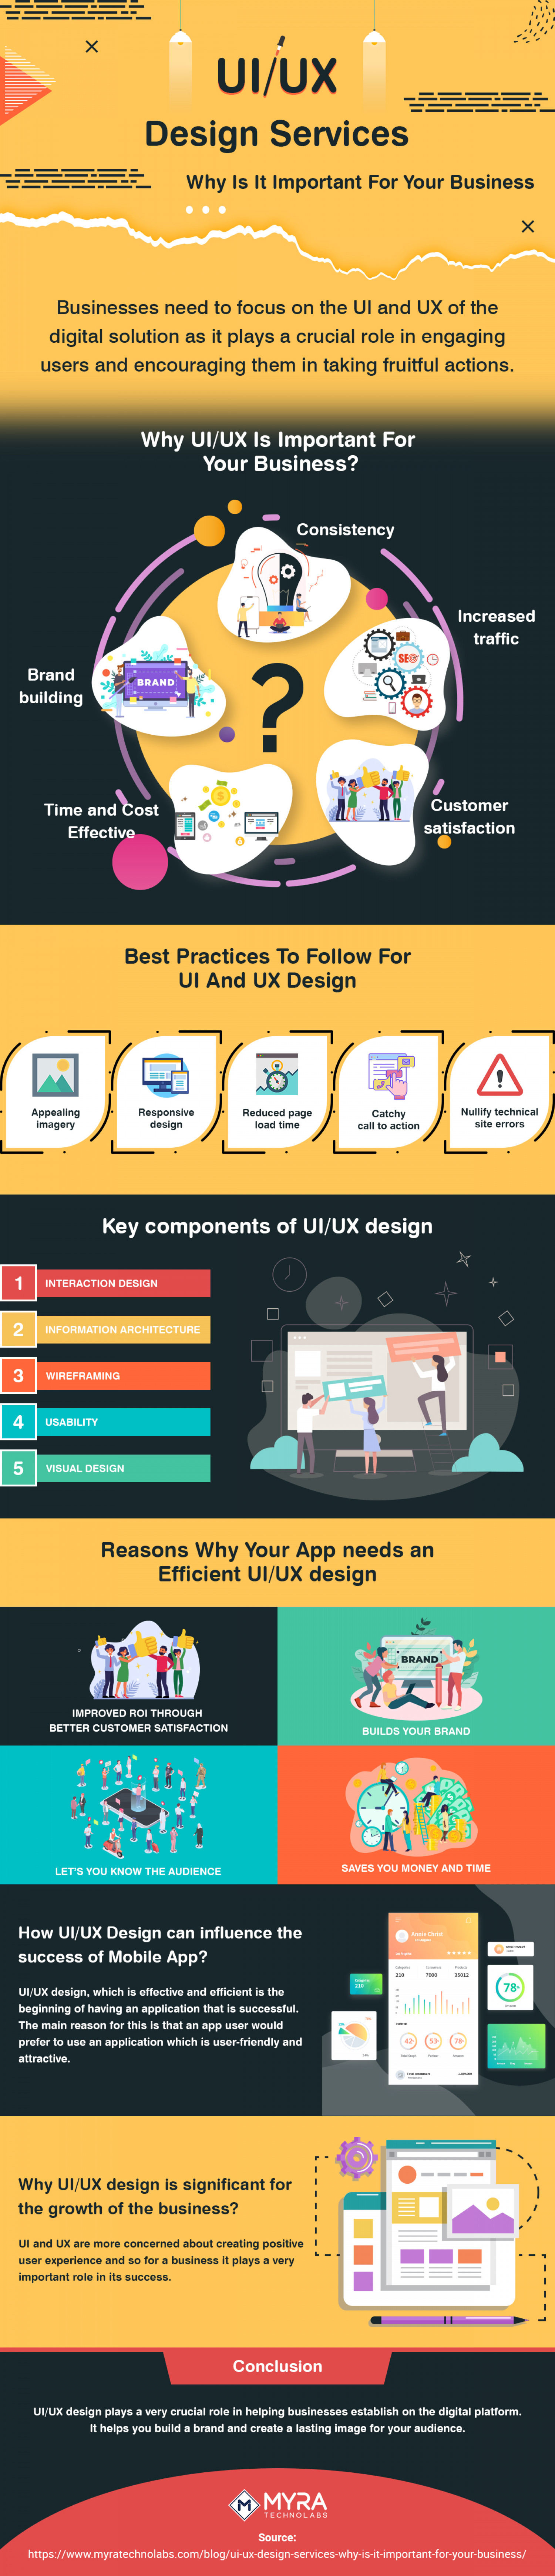 UI/UX Design Services: Why Is It Important For Your Business Infographic